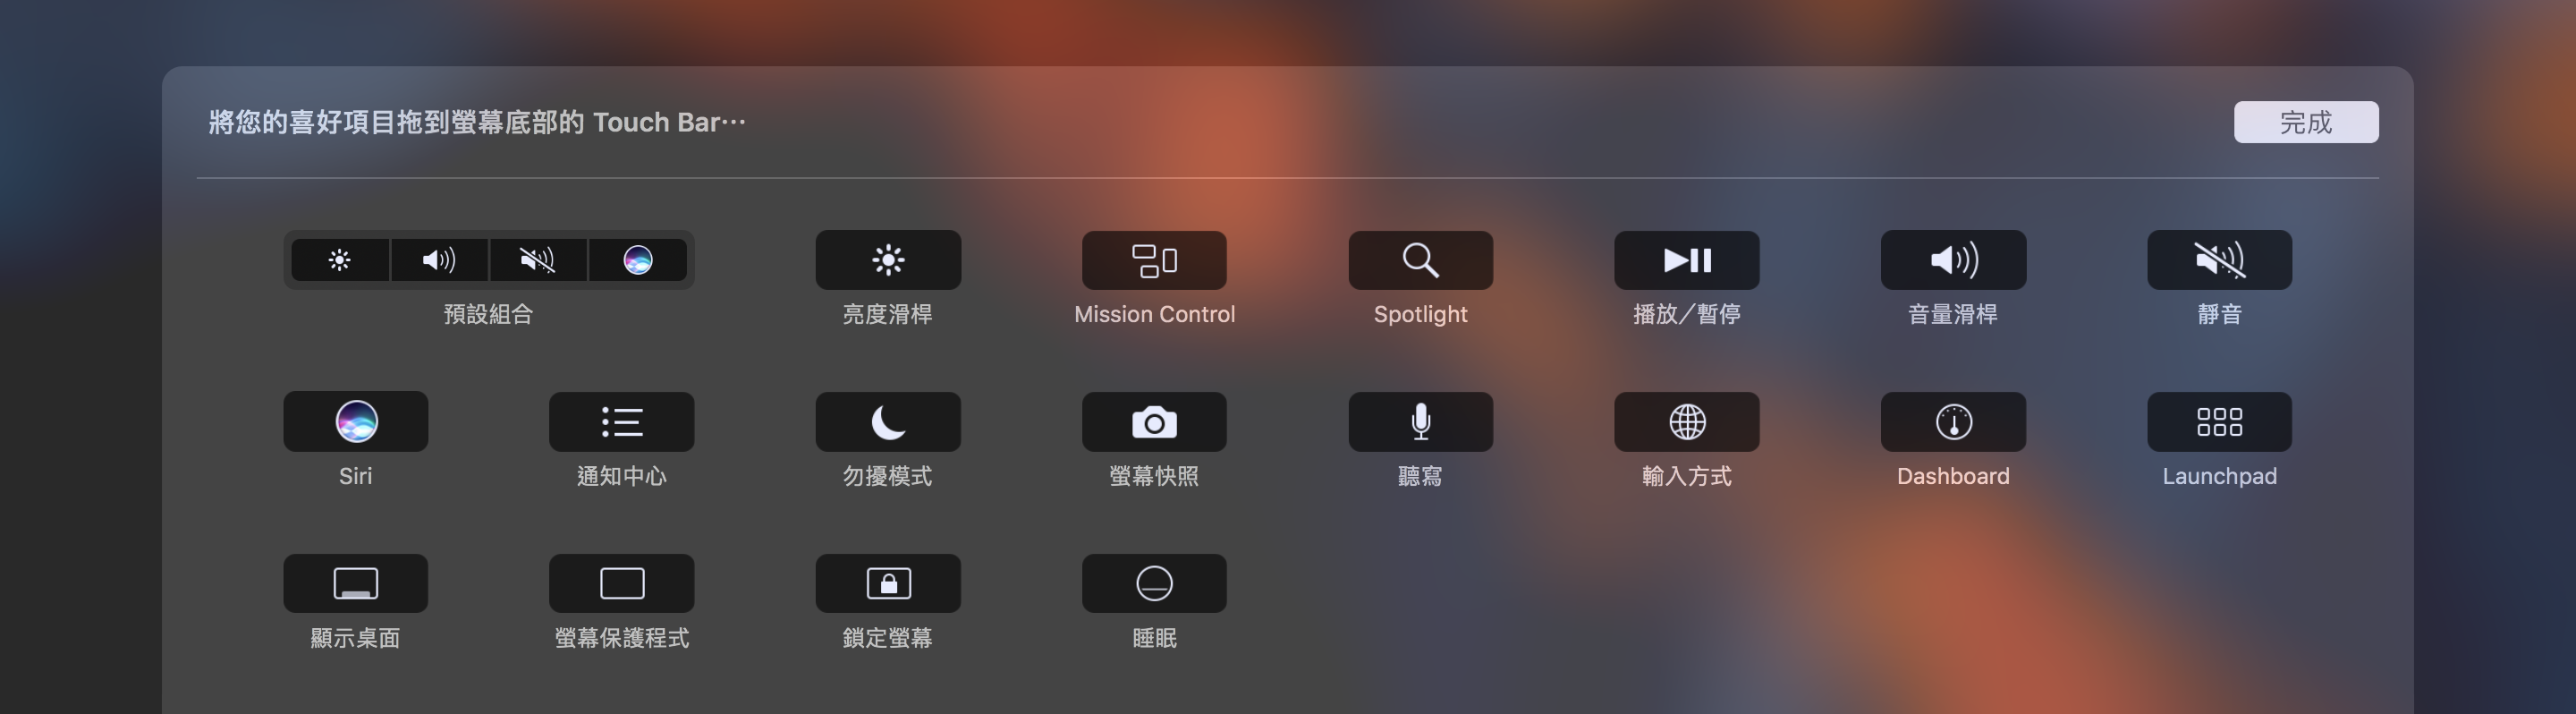 macbook-pro-touch-bar-settings_02